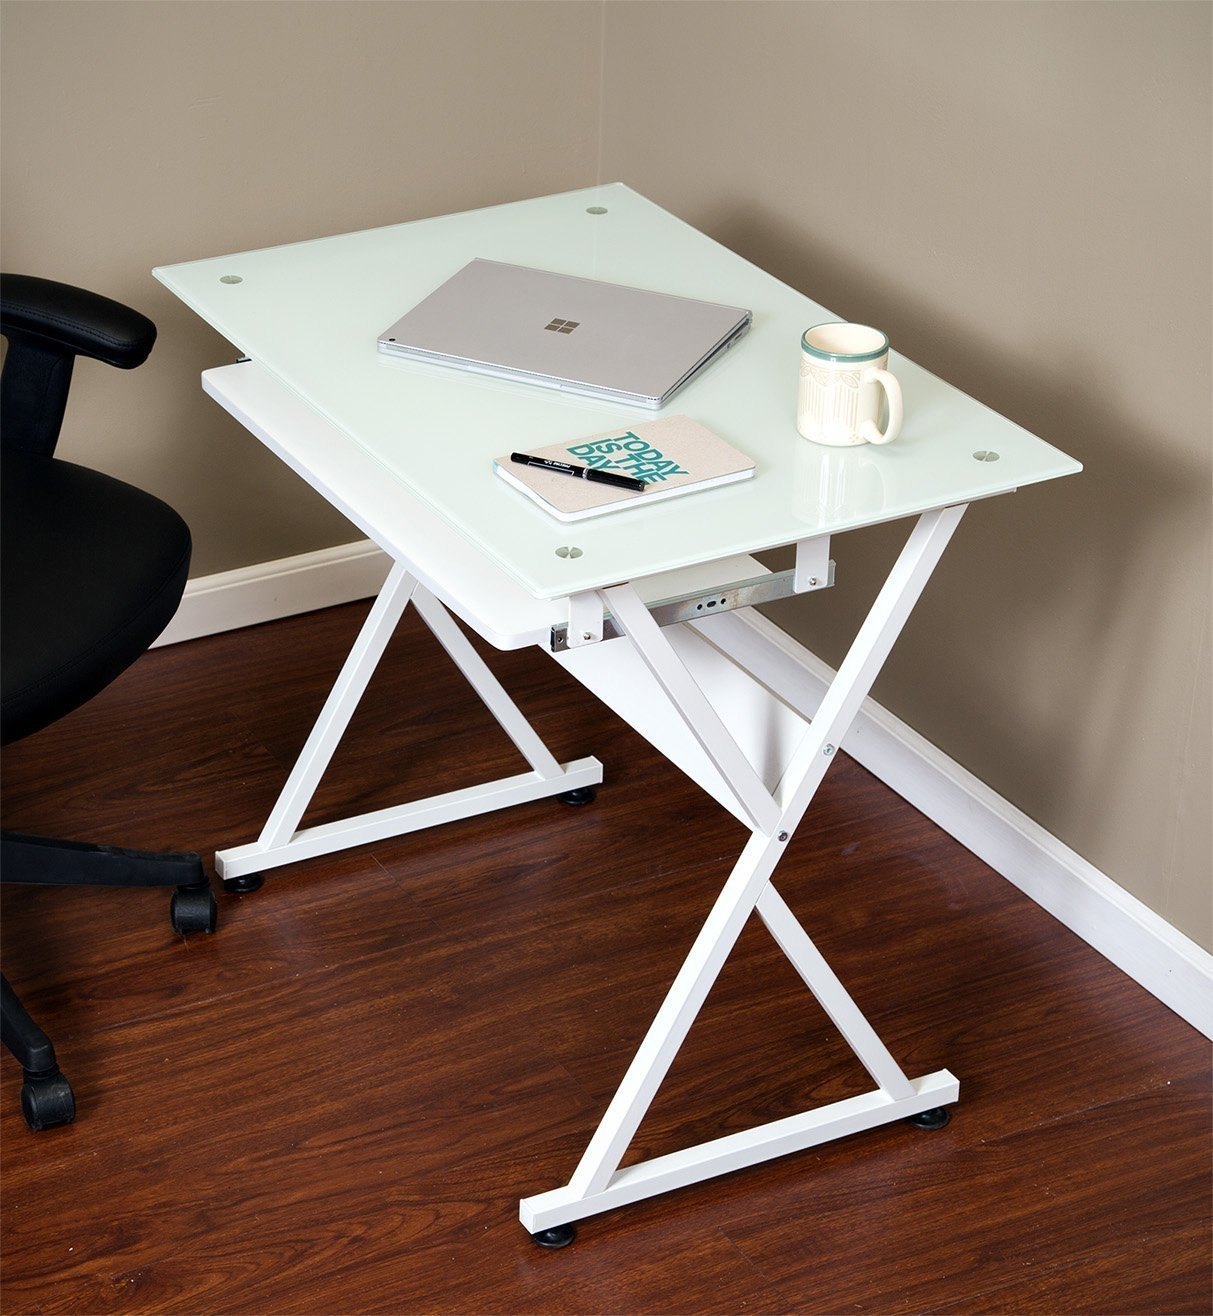 Onespace 50 Jn1201 Ultramodern Glass Computer Desk With Pull Out Keyboard Tray White Com